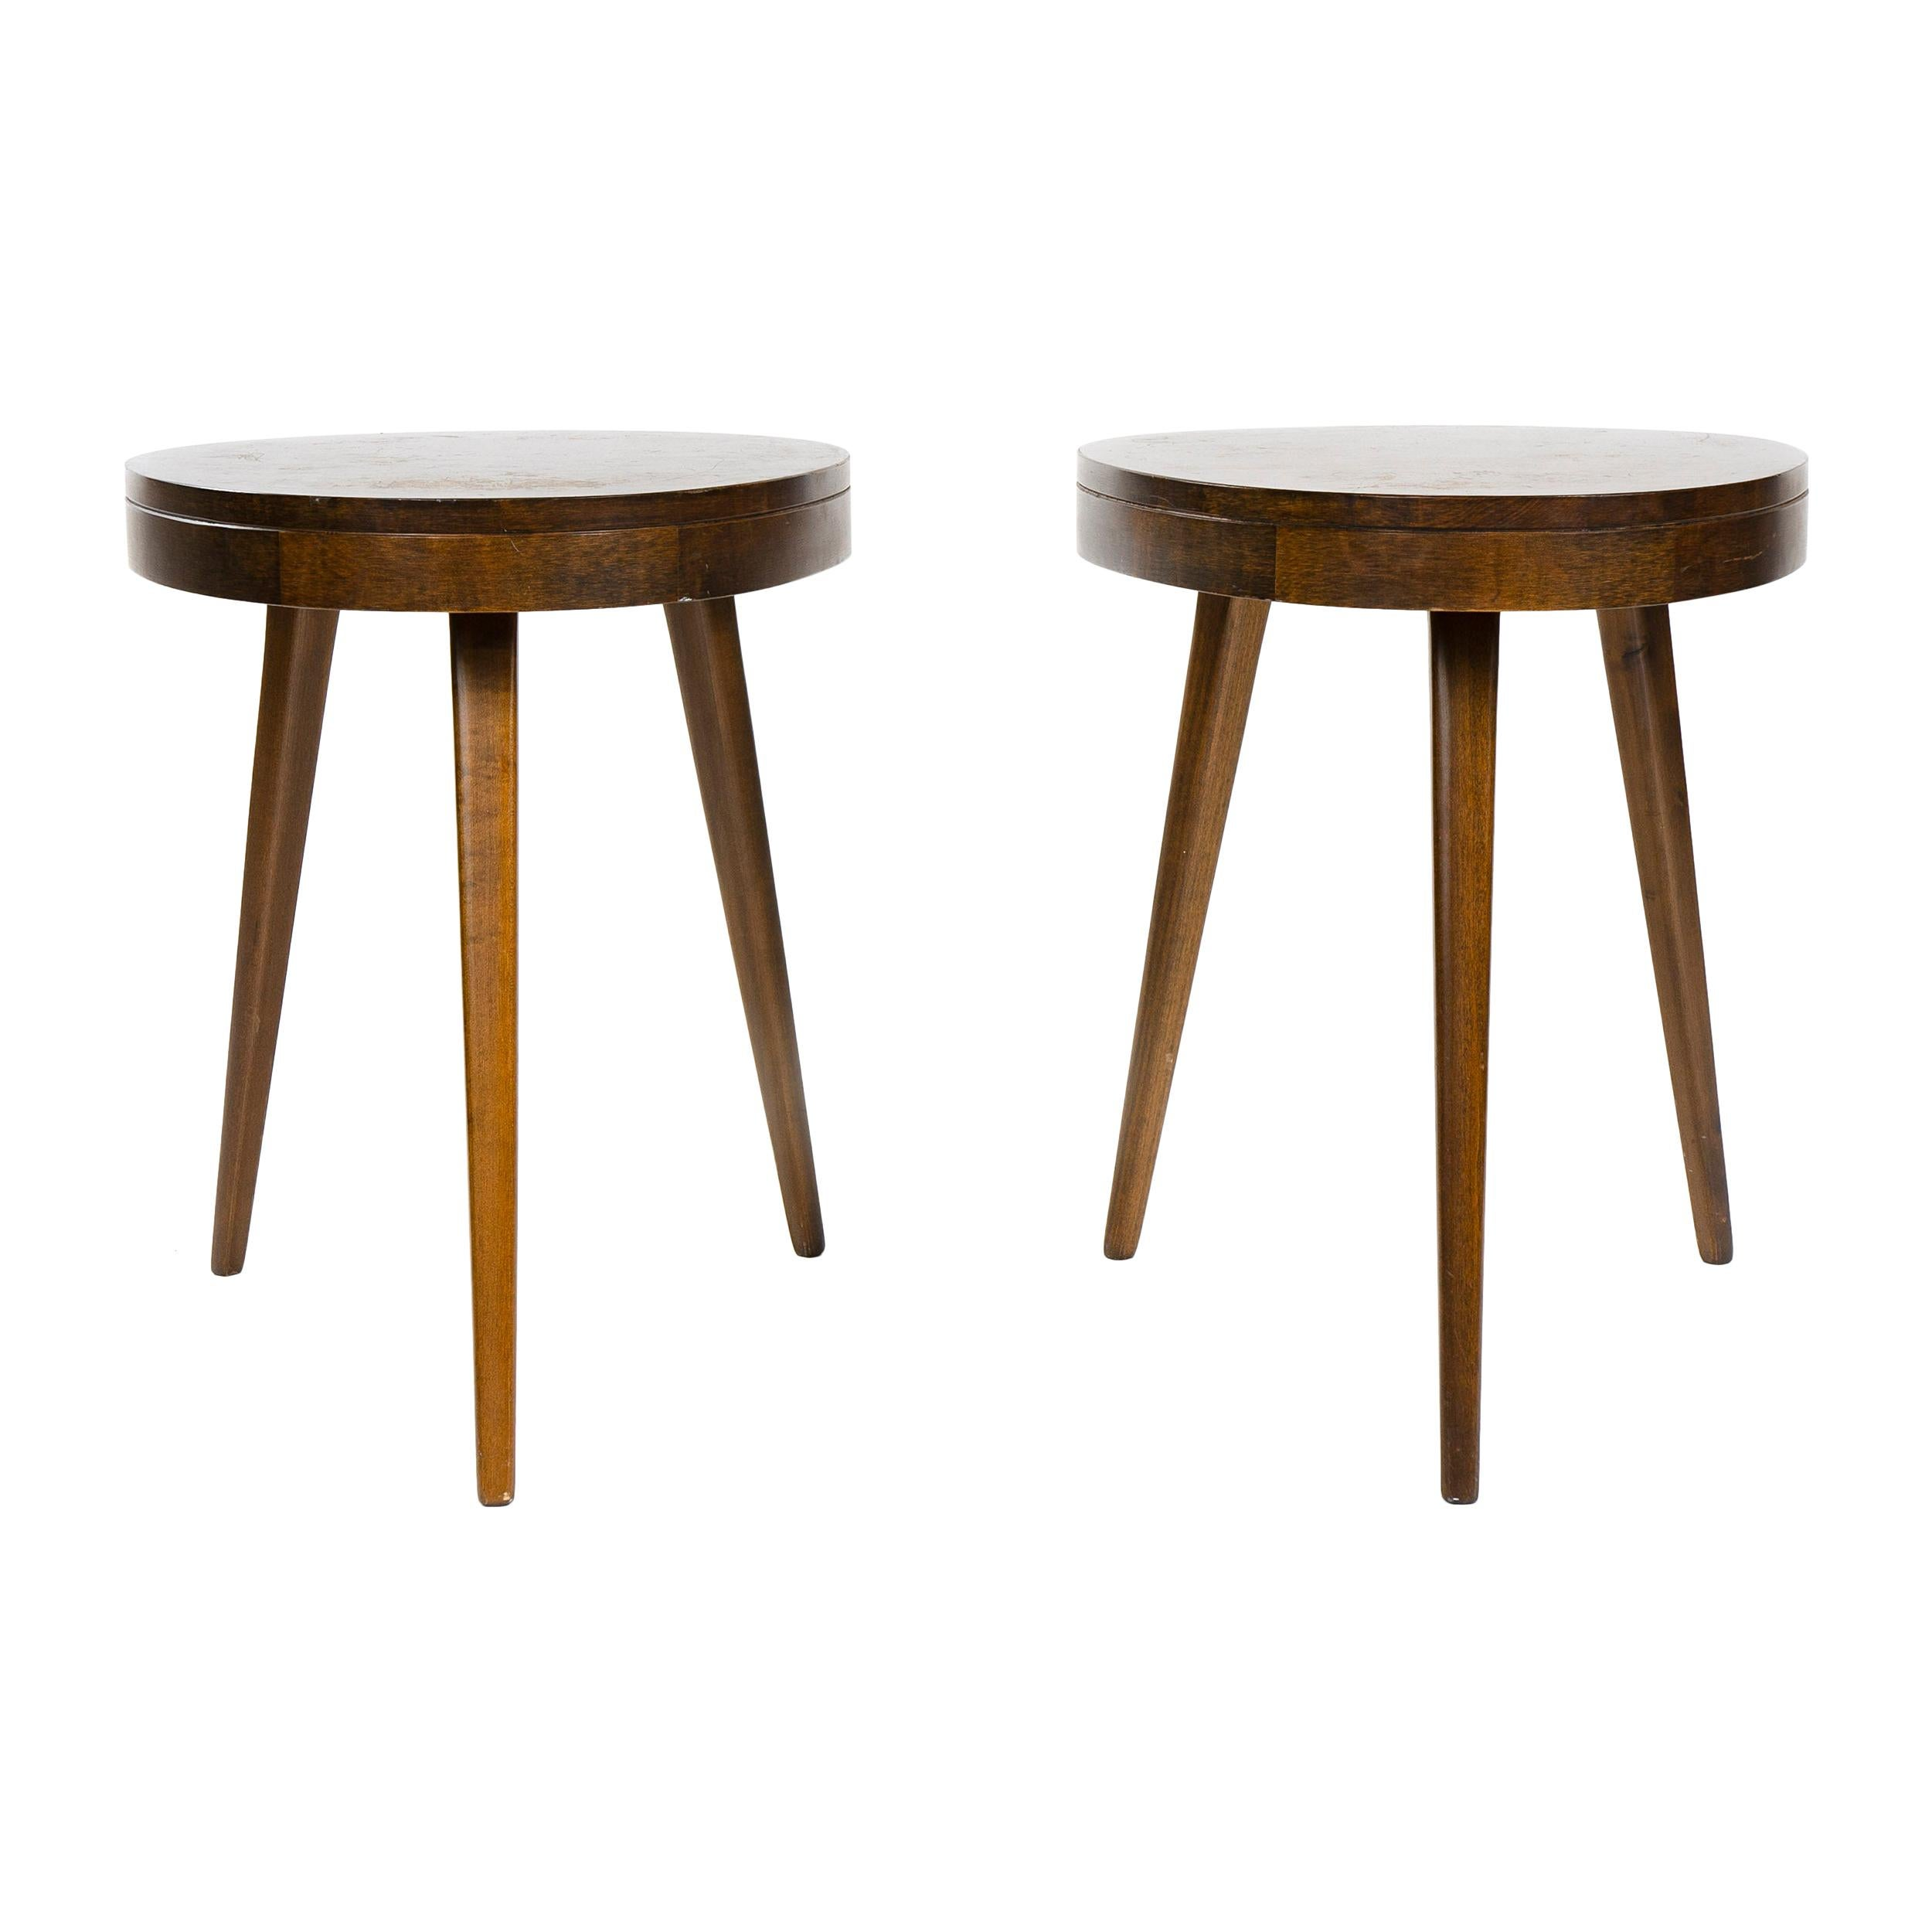 1950s Pair of Walnut Side Tables